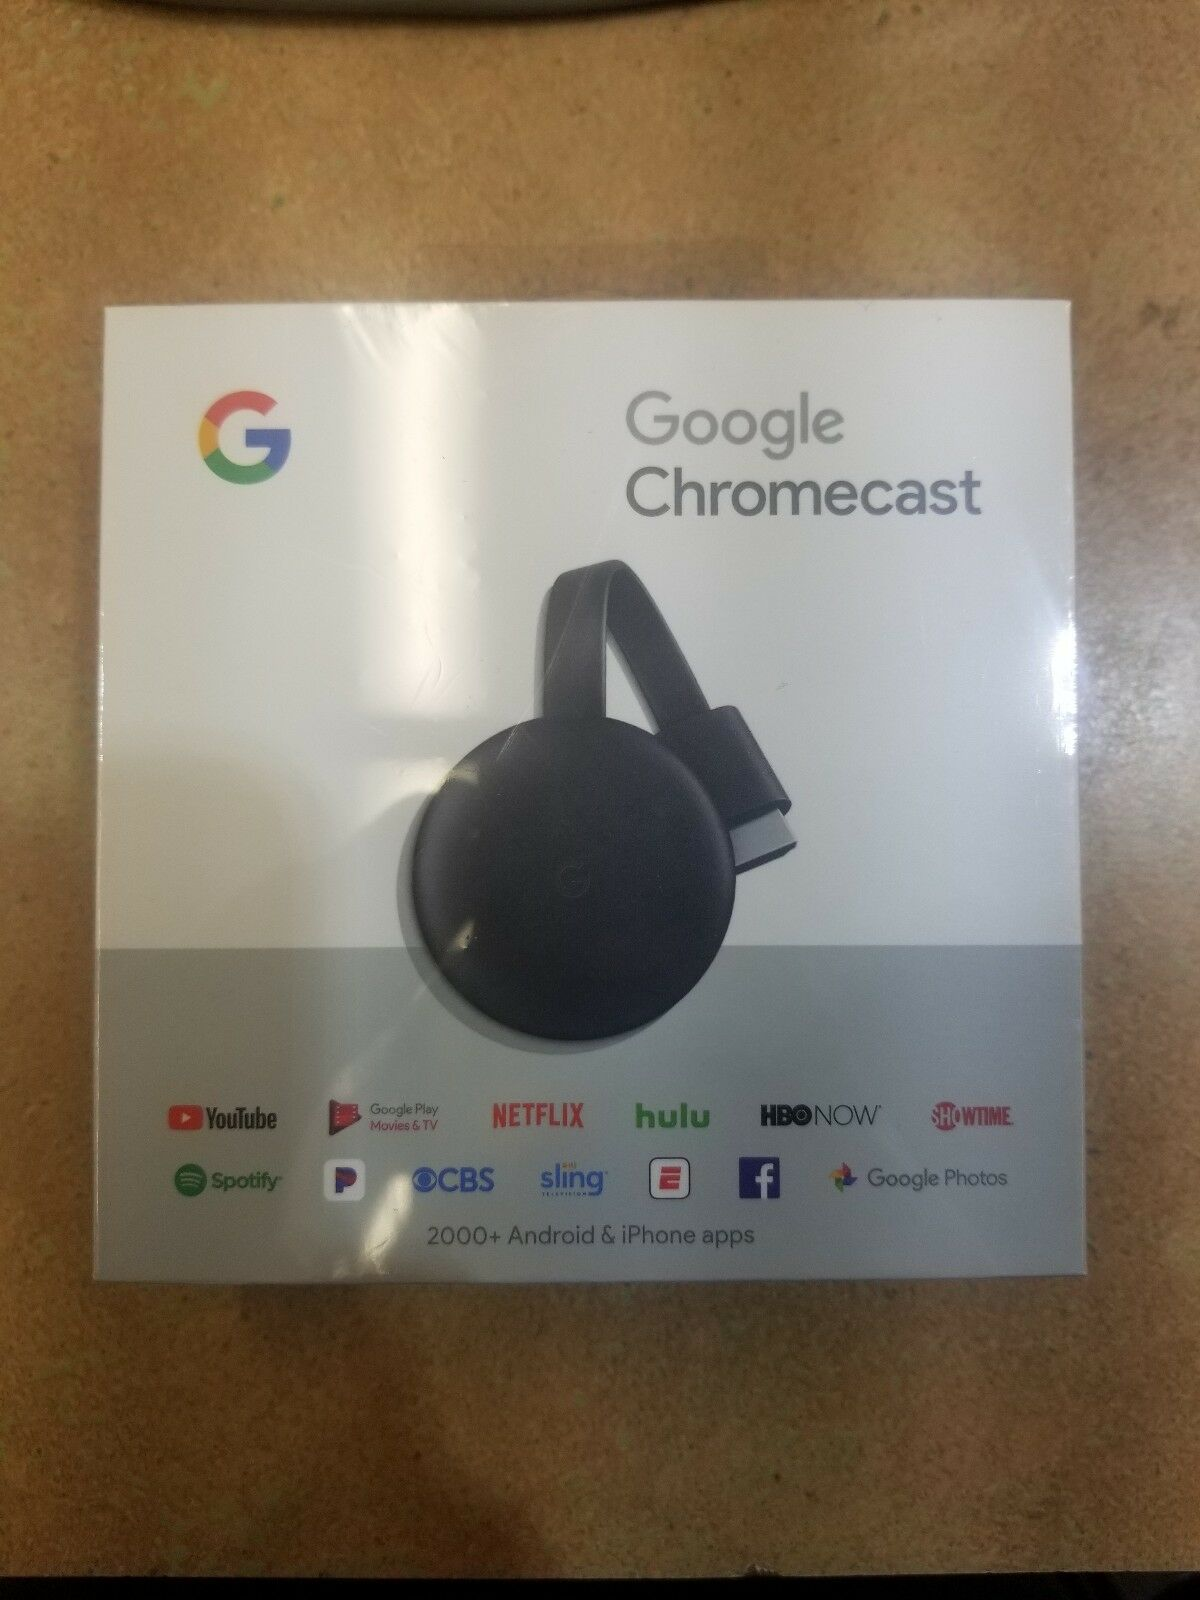 s-l1600 Google - Chromecast 3rd Generation Streaming Media Player - Charcoal